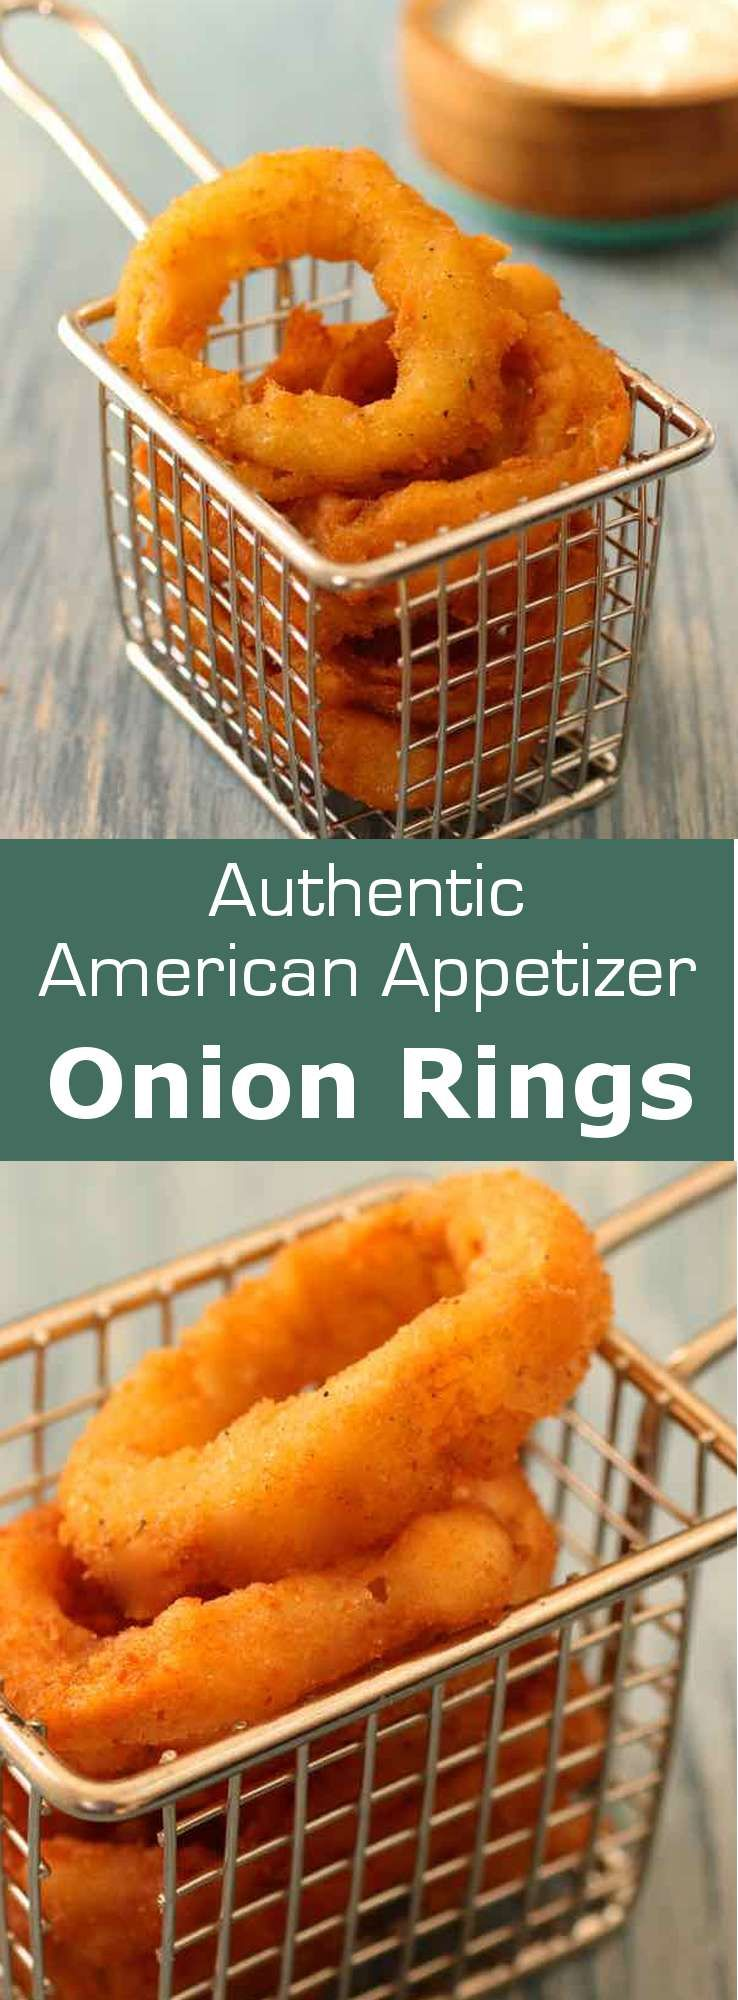 Traditional American recipe of the famous onion rings, fried and served with ranch dressing or barbecue sauce. #appetizer #American #196flavors #onionringsrecipe